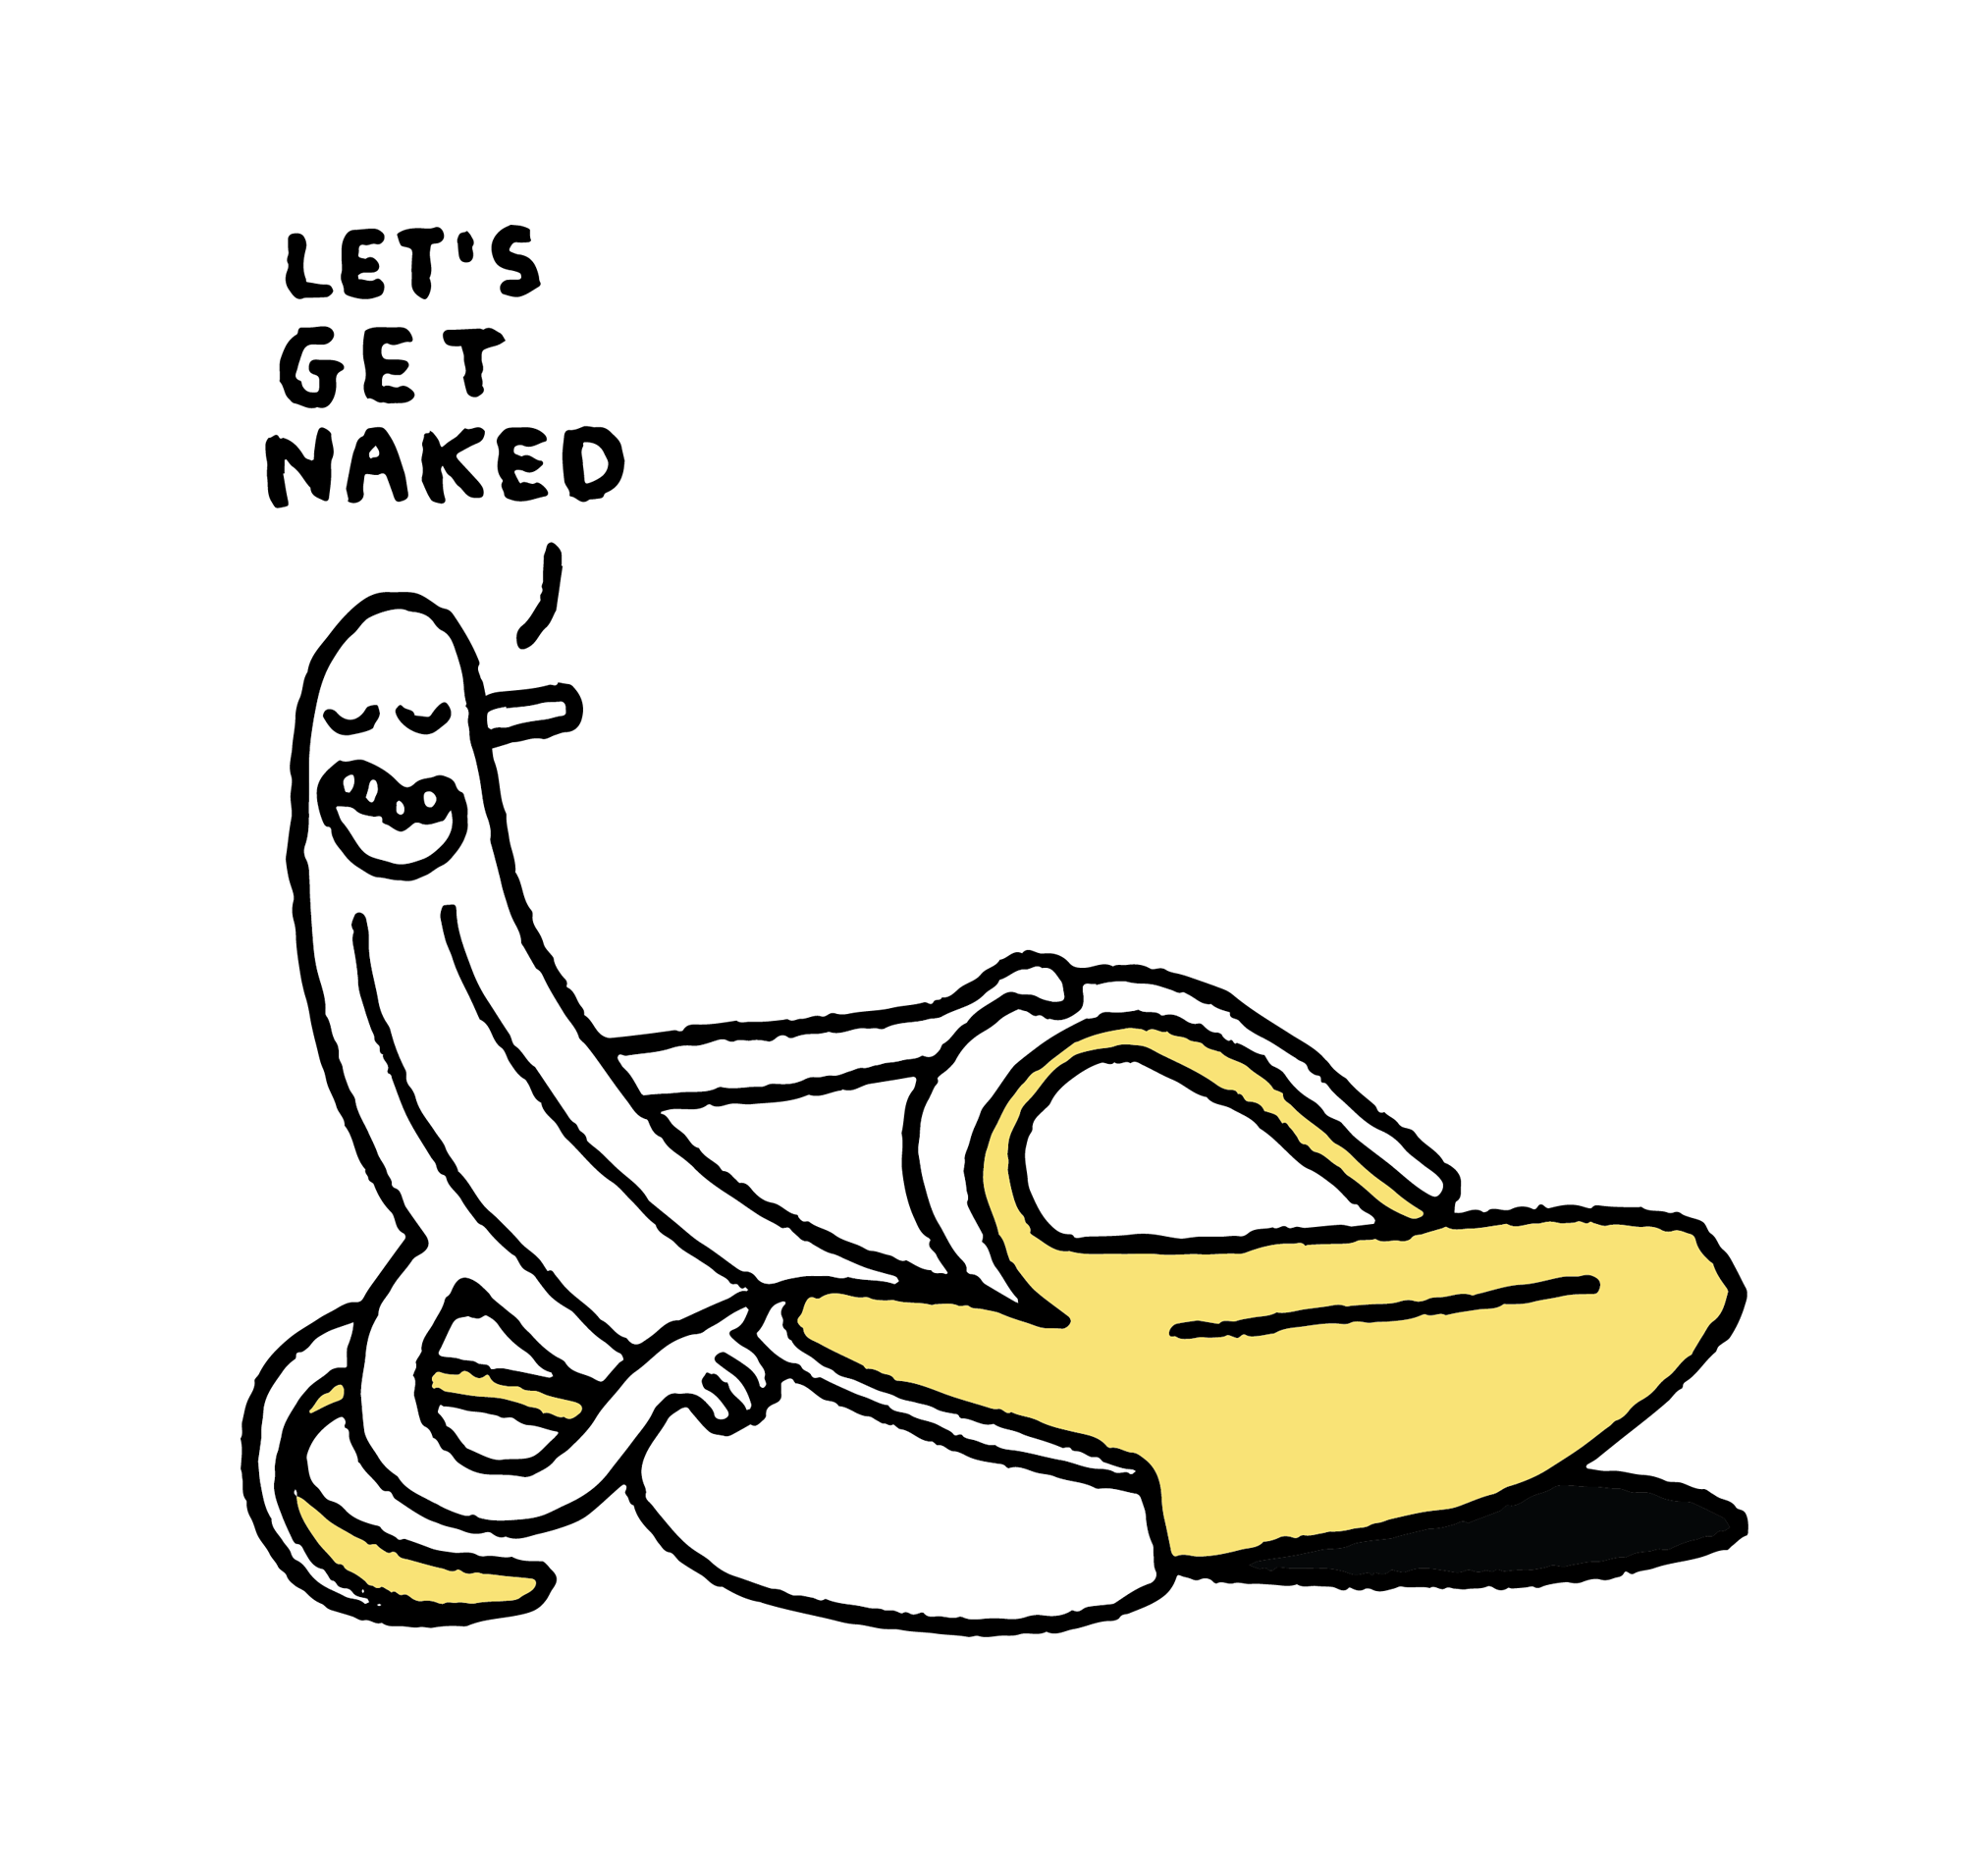 breakfastclub-trendsontrends-banana-amit-greenberg.png